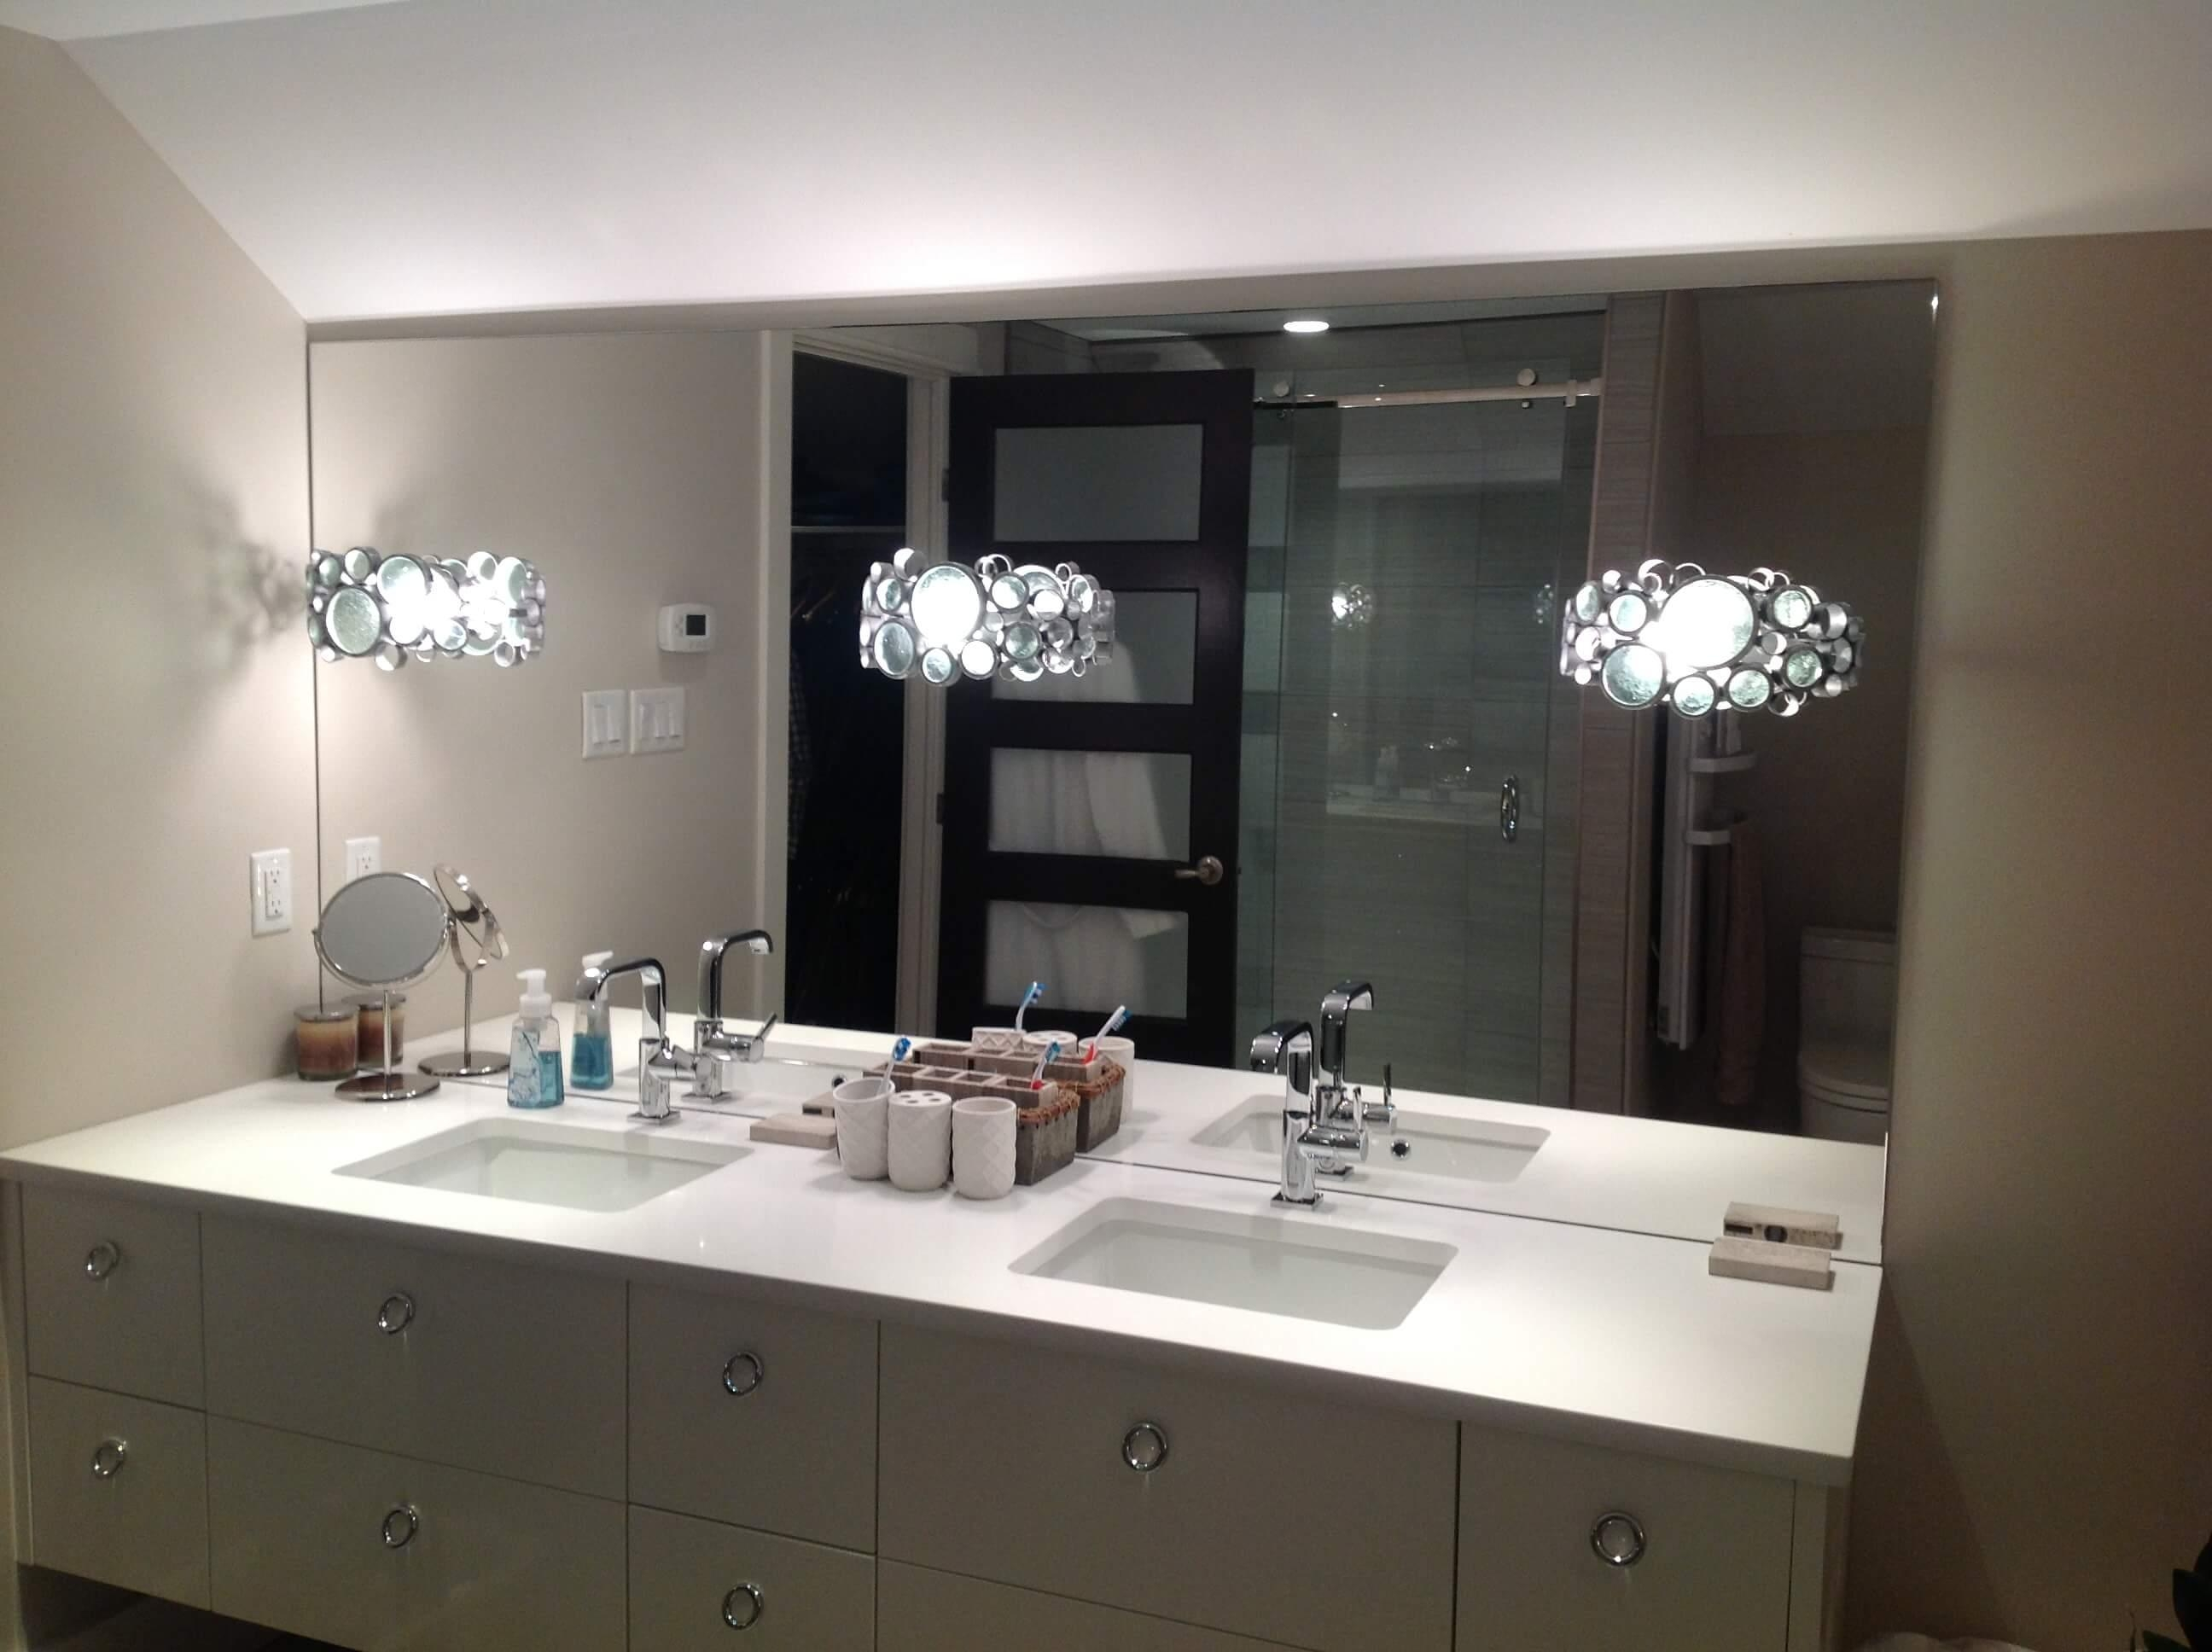 Vanity Mirrors 20 Collection Of Custom Bathroom Vanity Mirrors Mirror Ideas